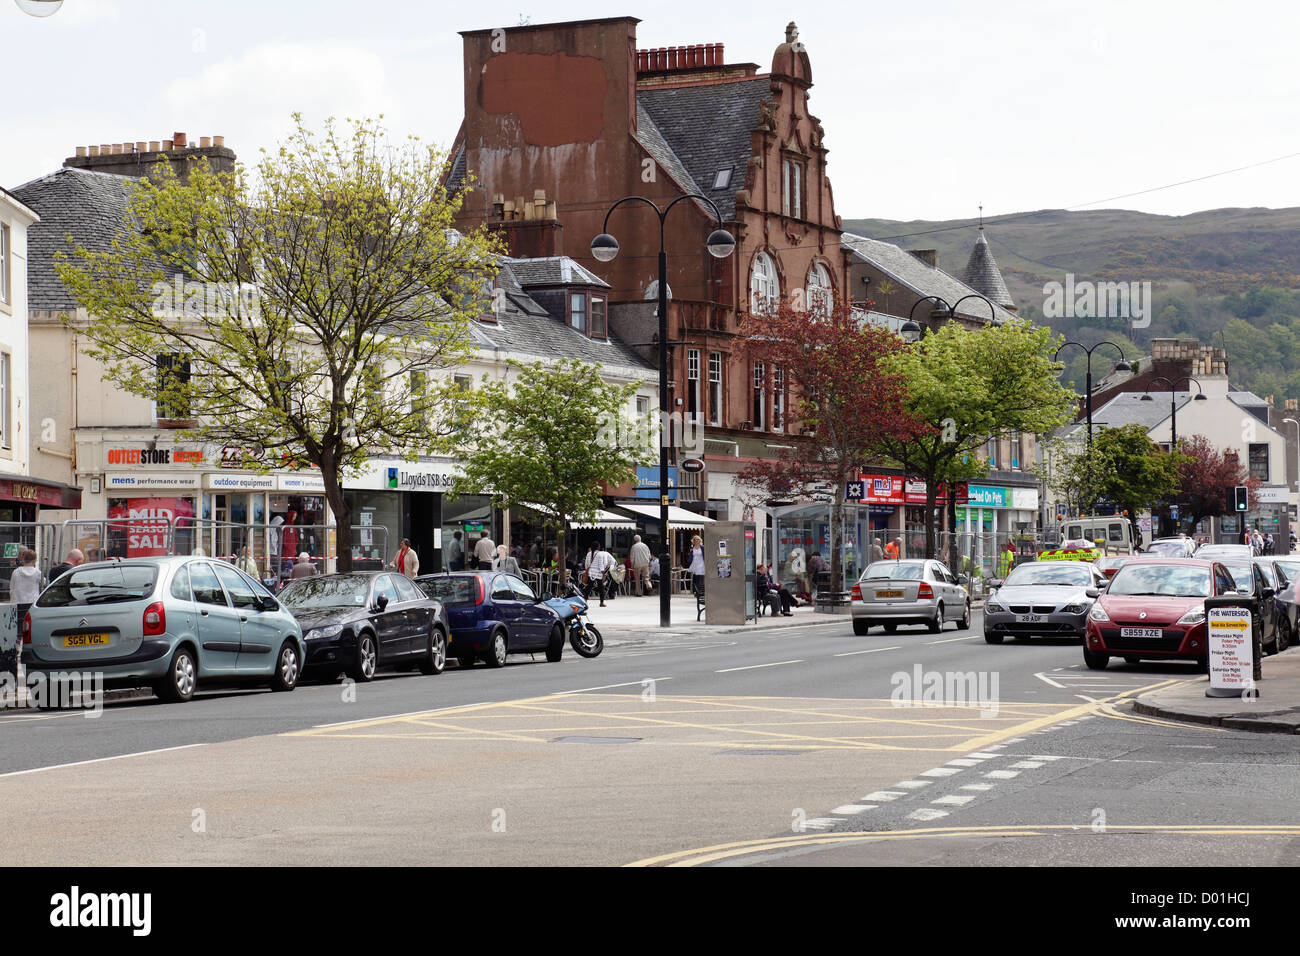 Looking East along Main Street in the seaside town of Largs in Ayrshire, Scotland, UK - Stock Image